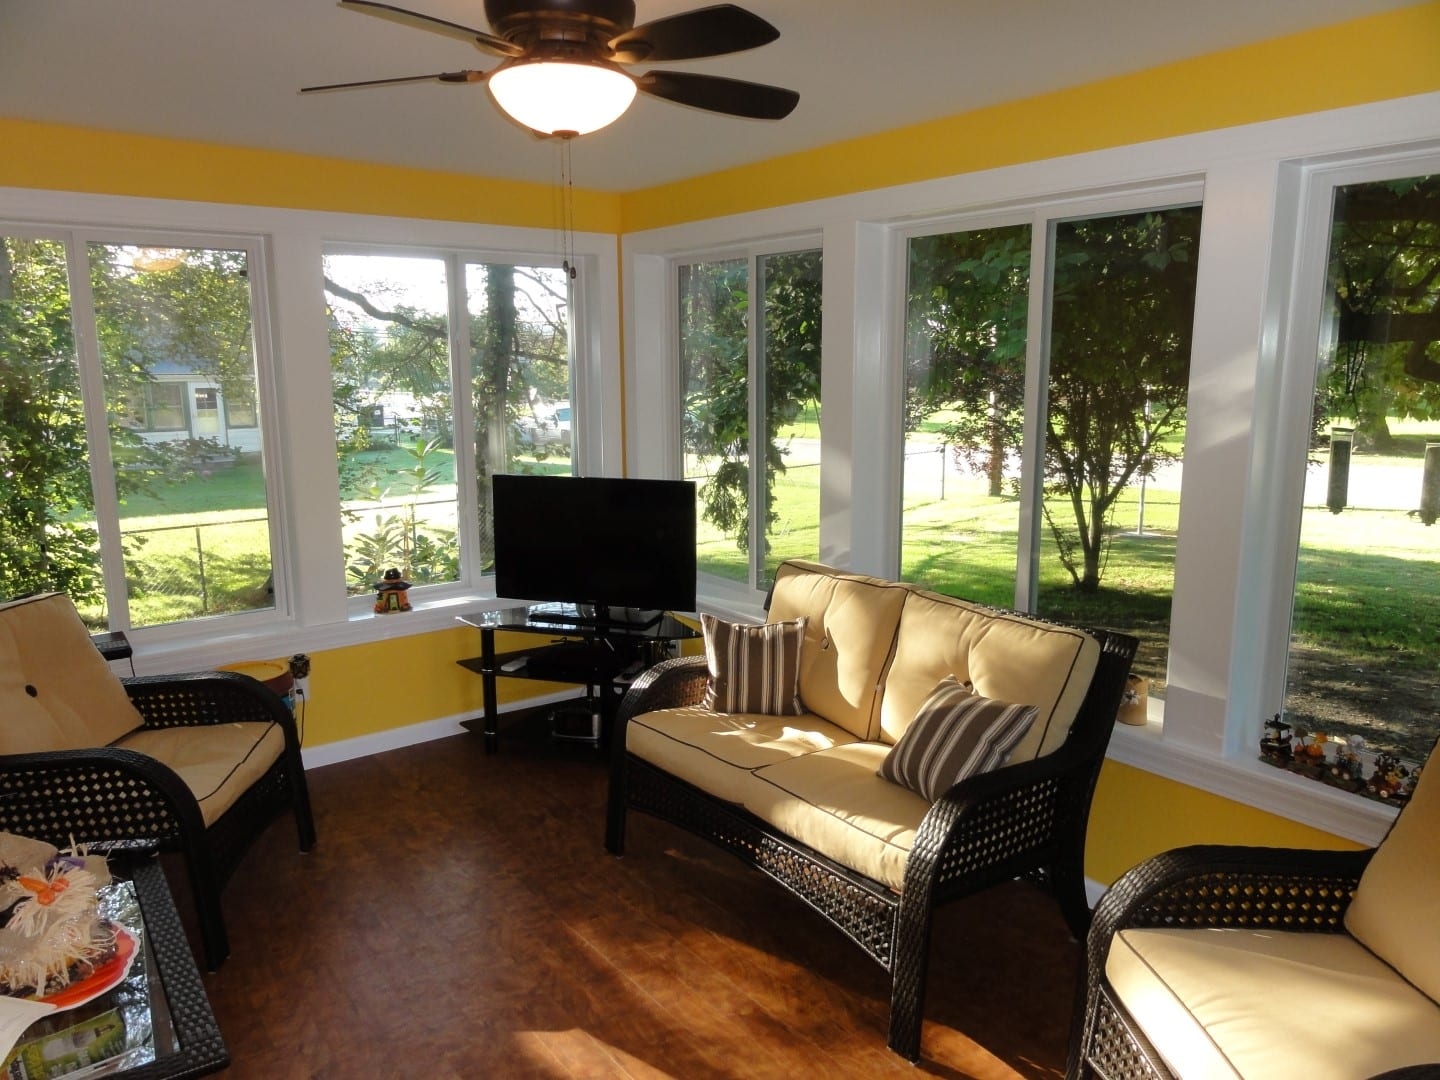 Sunroom Installation in Dutchess County, NY - DBS Remodel